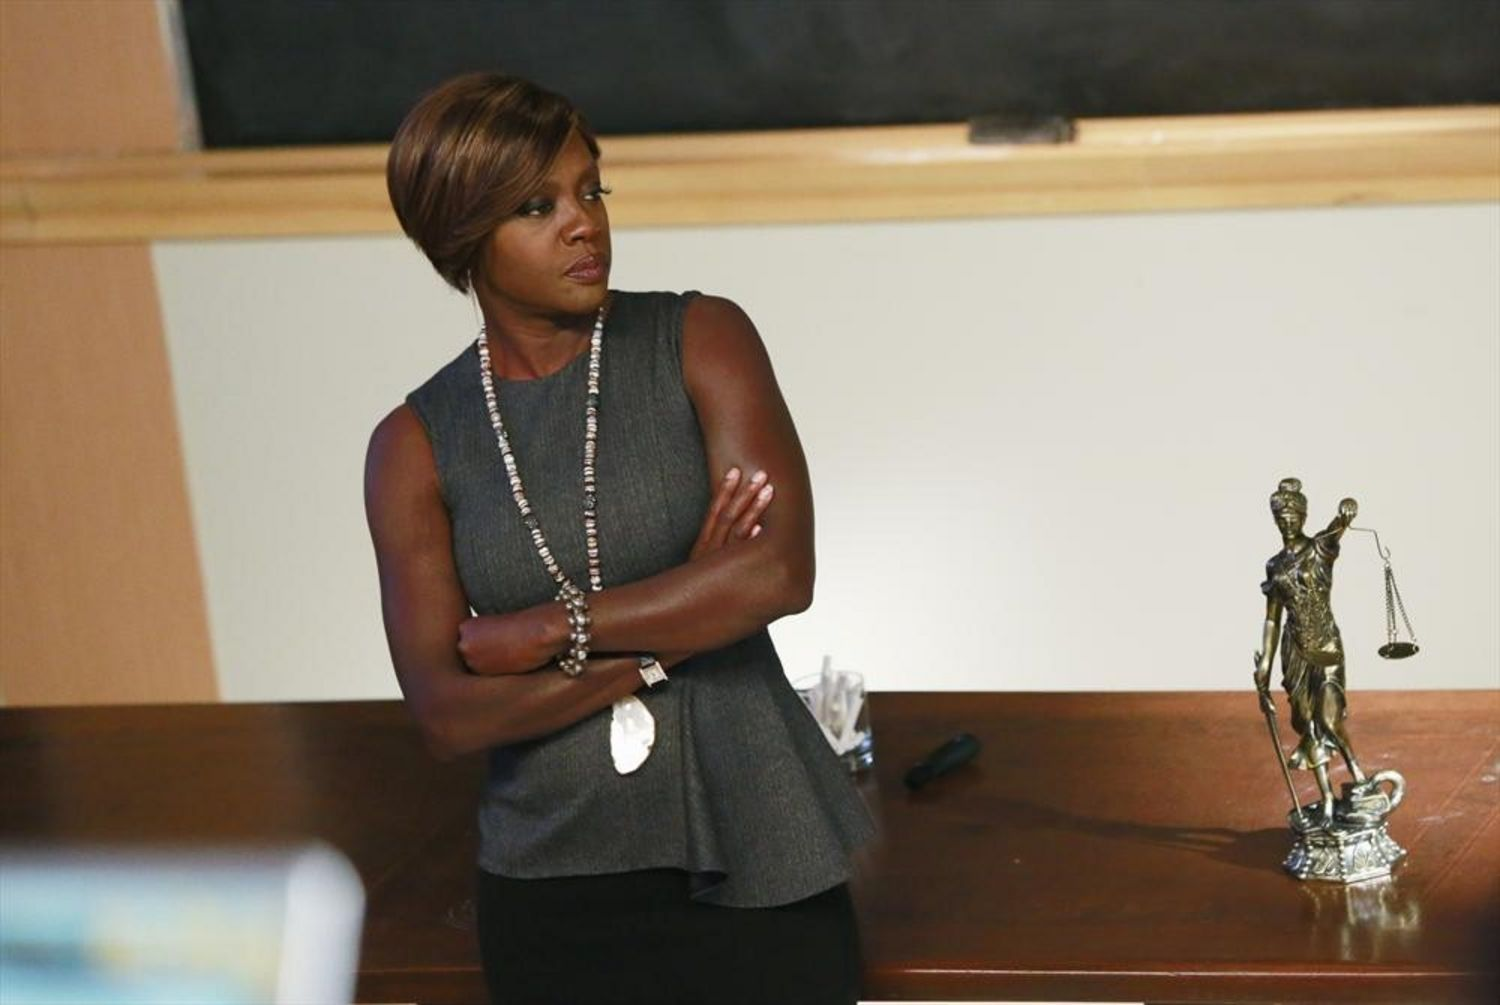 Howgetawaymurderseason2premieredate How To Get Away With Murder Season 3